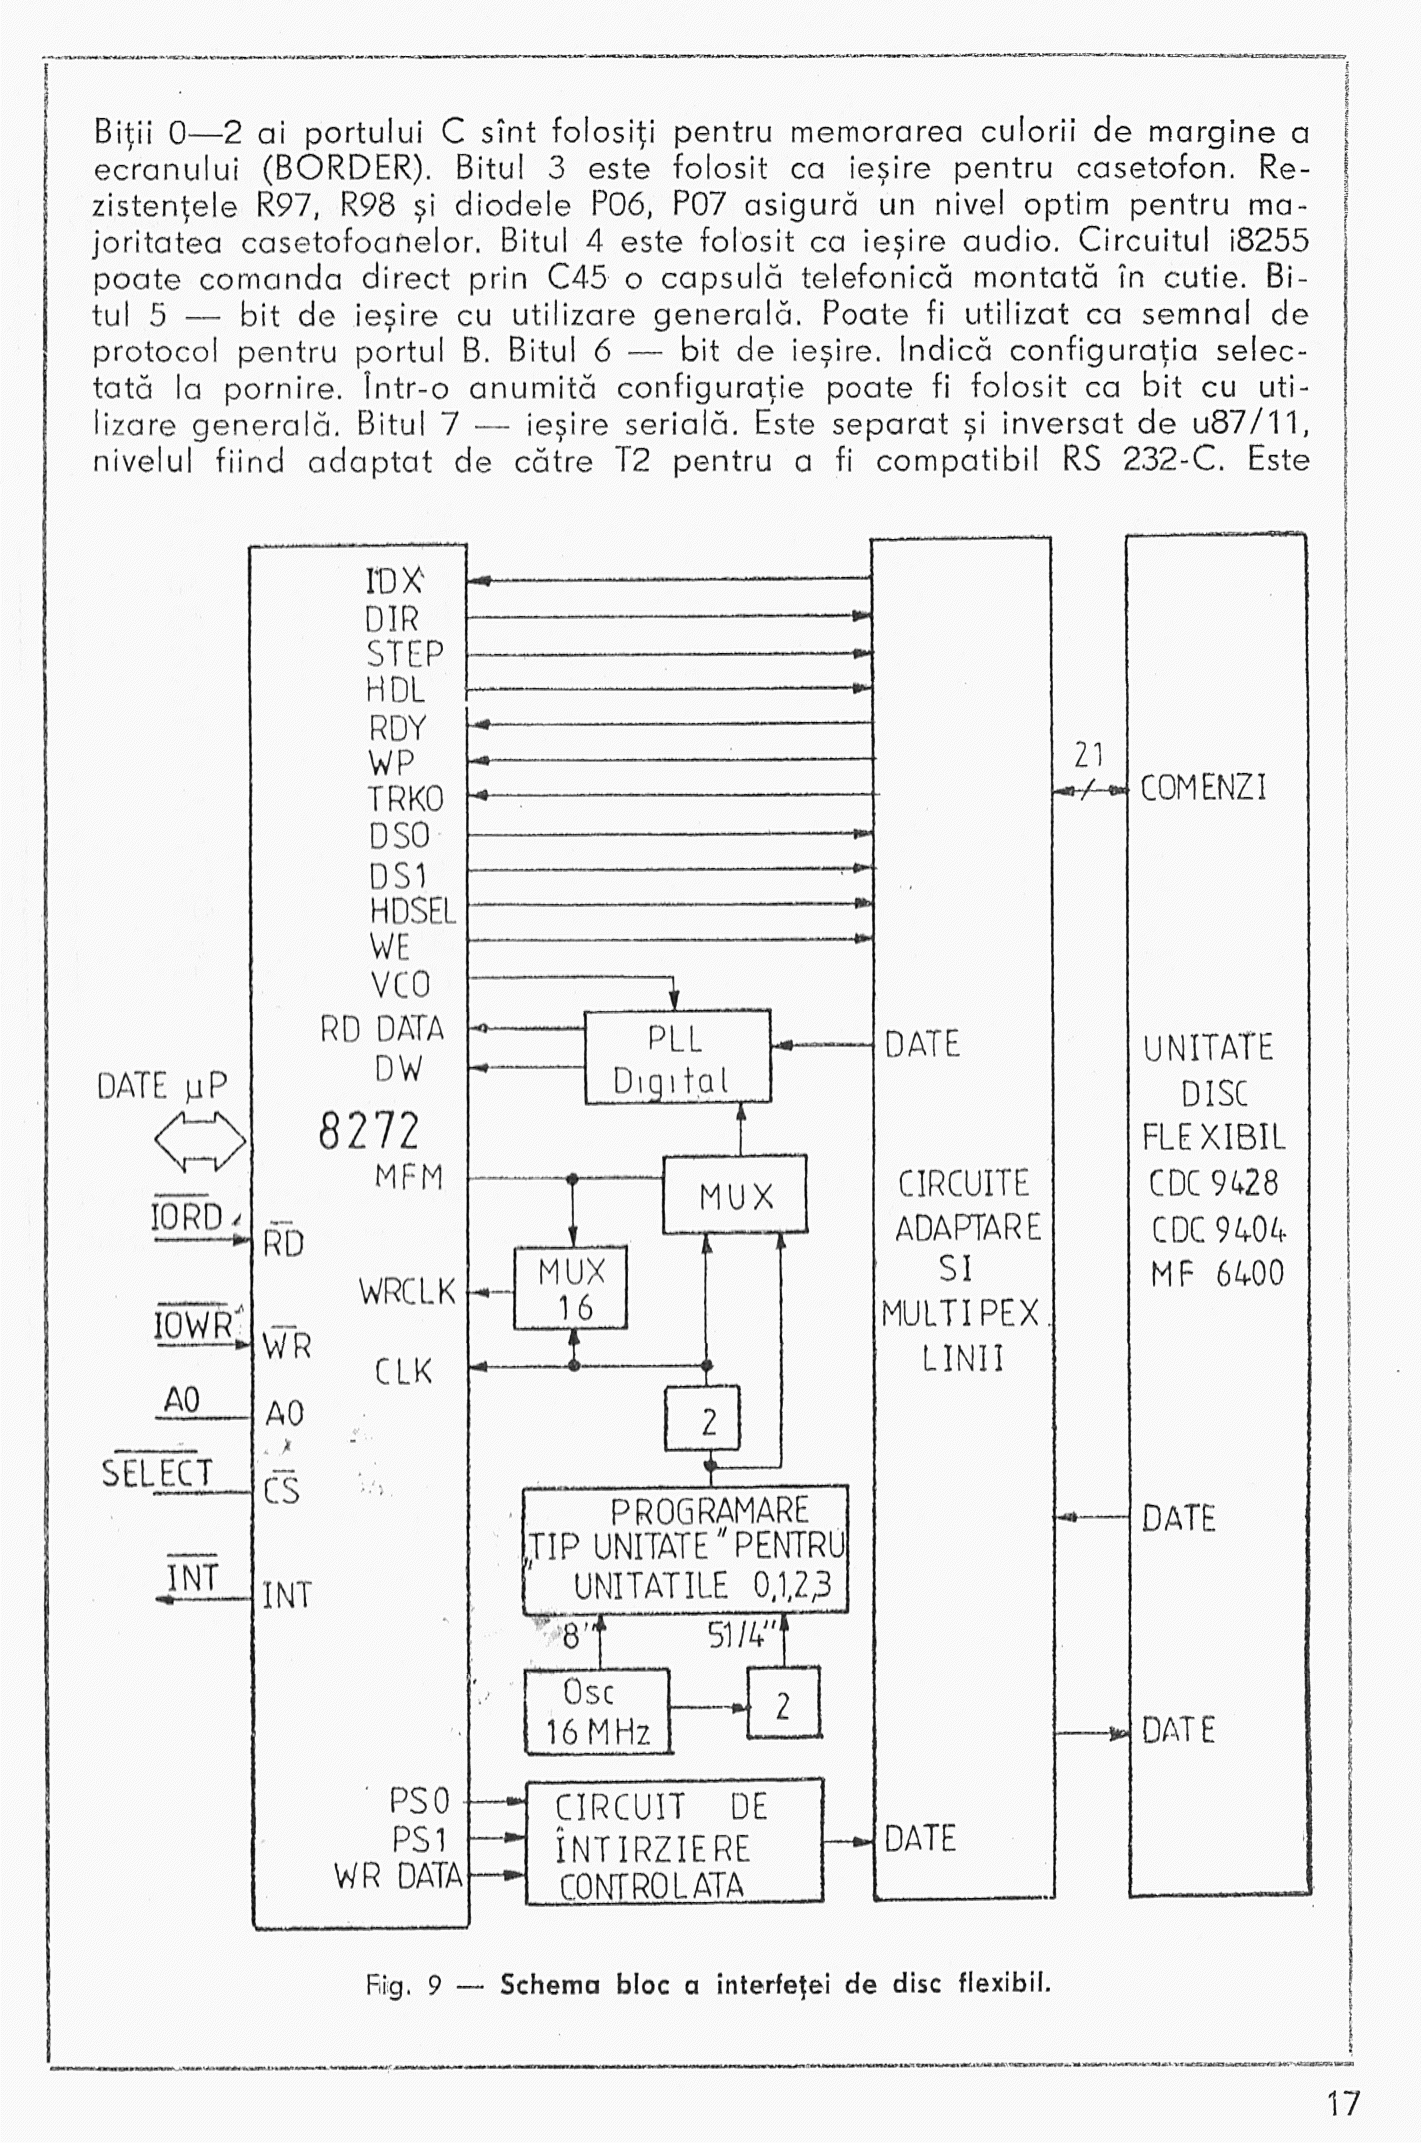 The Original Cp M Cobra Manual Logic Of 74248 Circuit Is Represented By Following Pag17